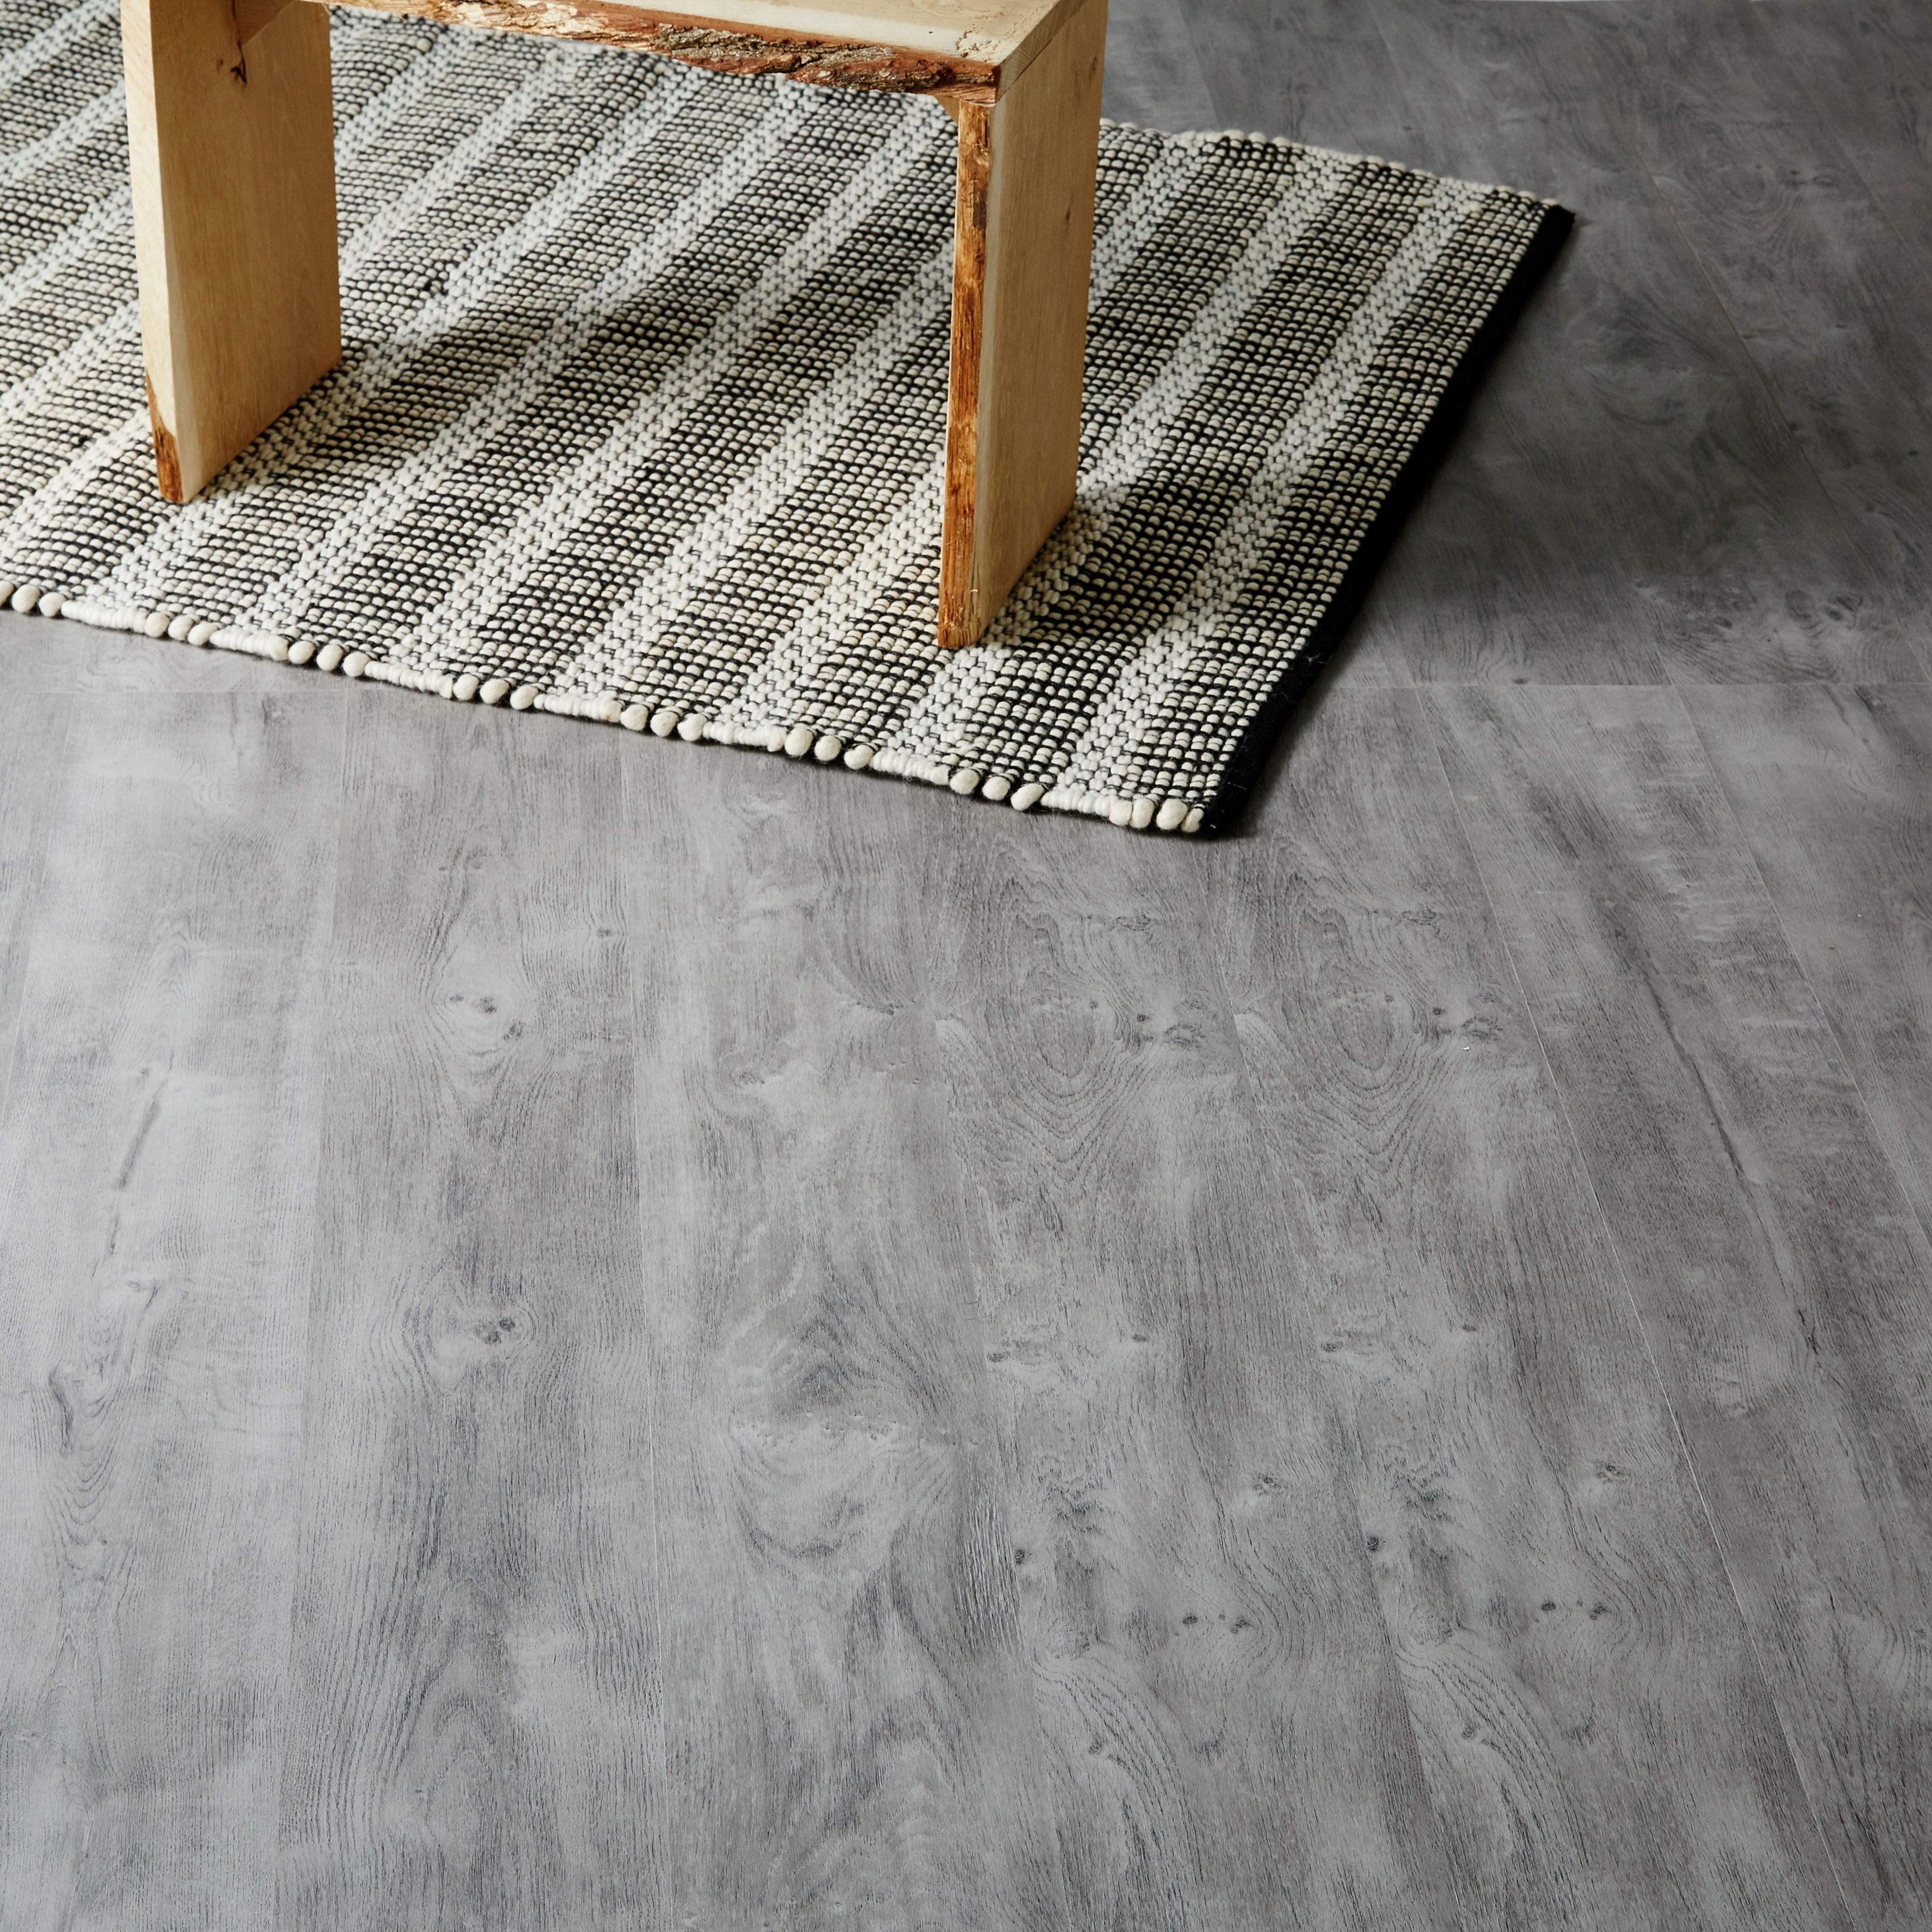 caloundra grey oak effect laminate flooring sample. Black Bedroom Furniture Sets. Home Design Ideas